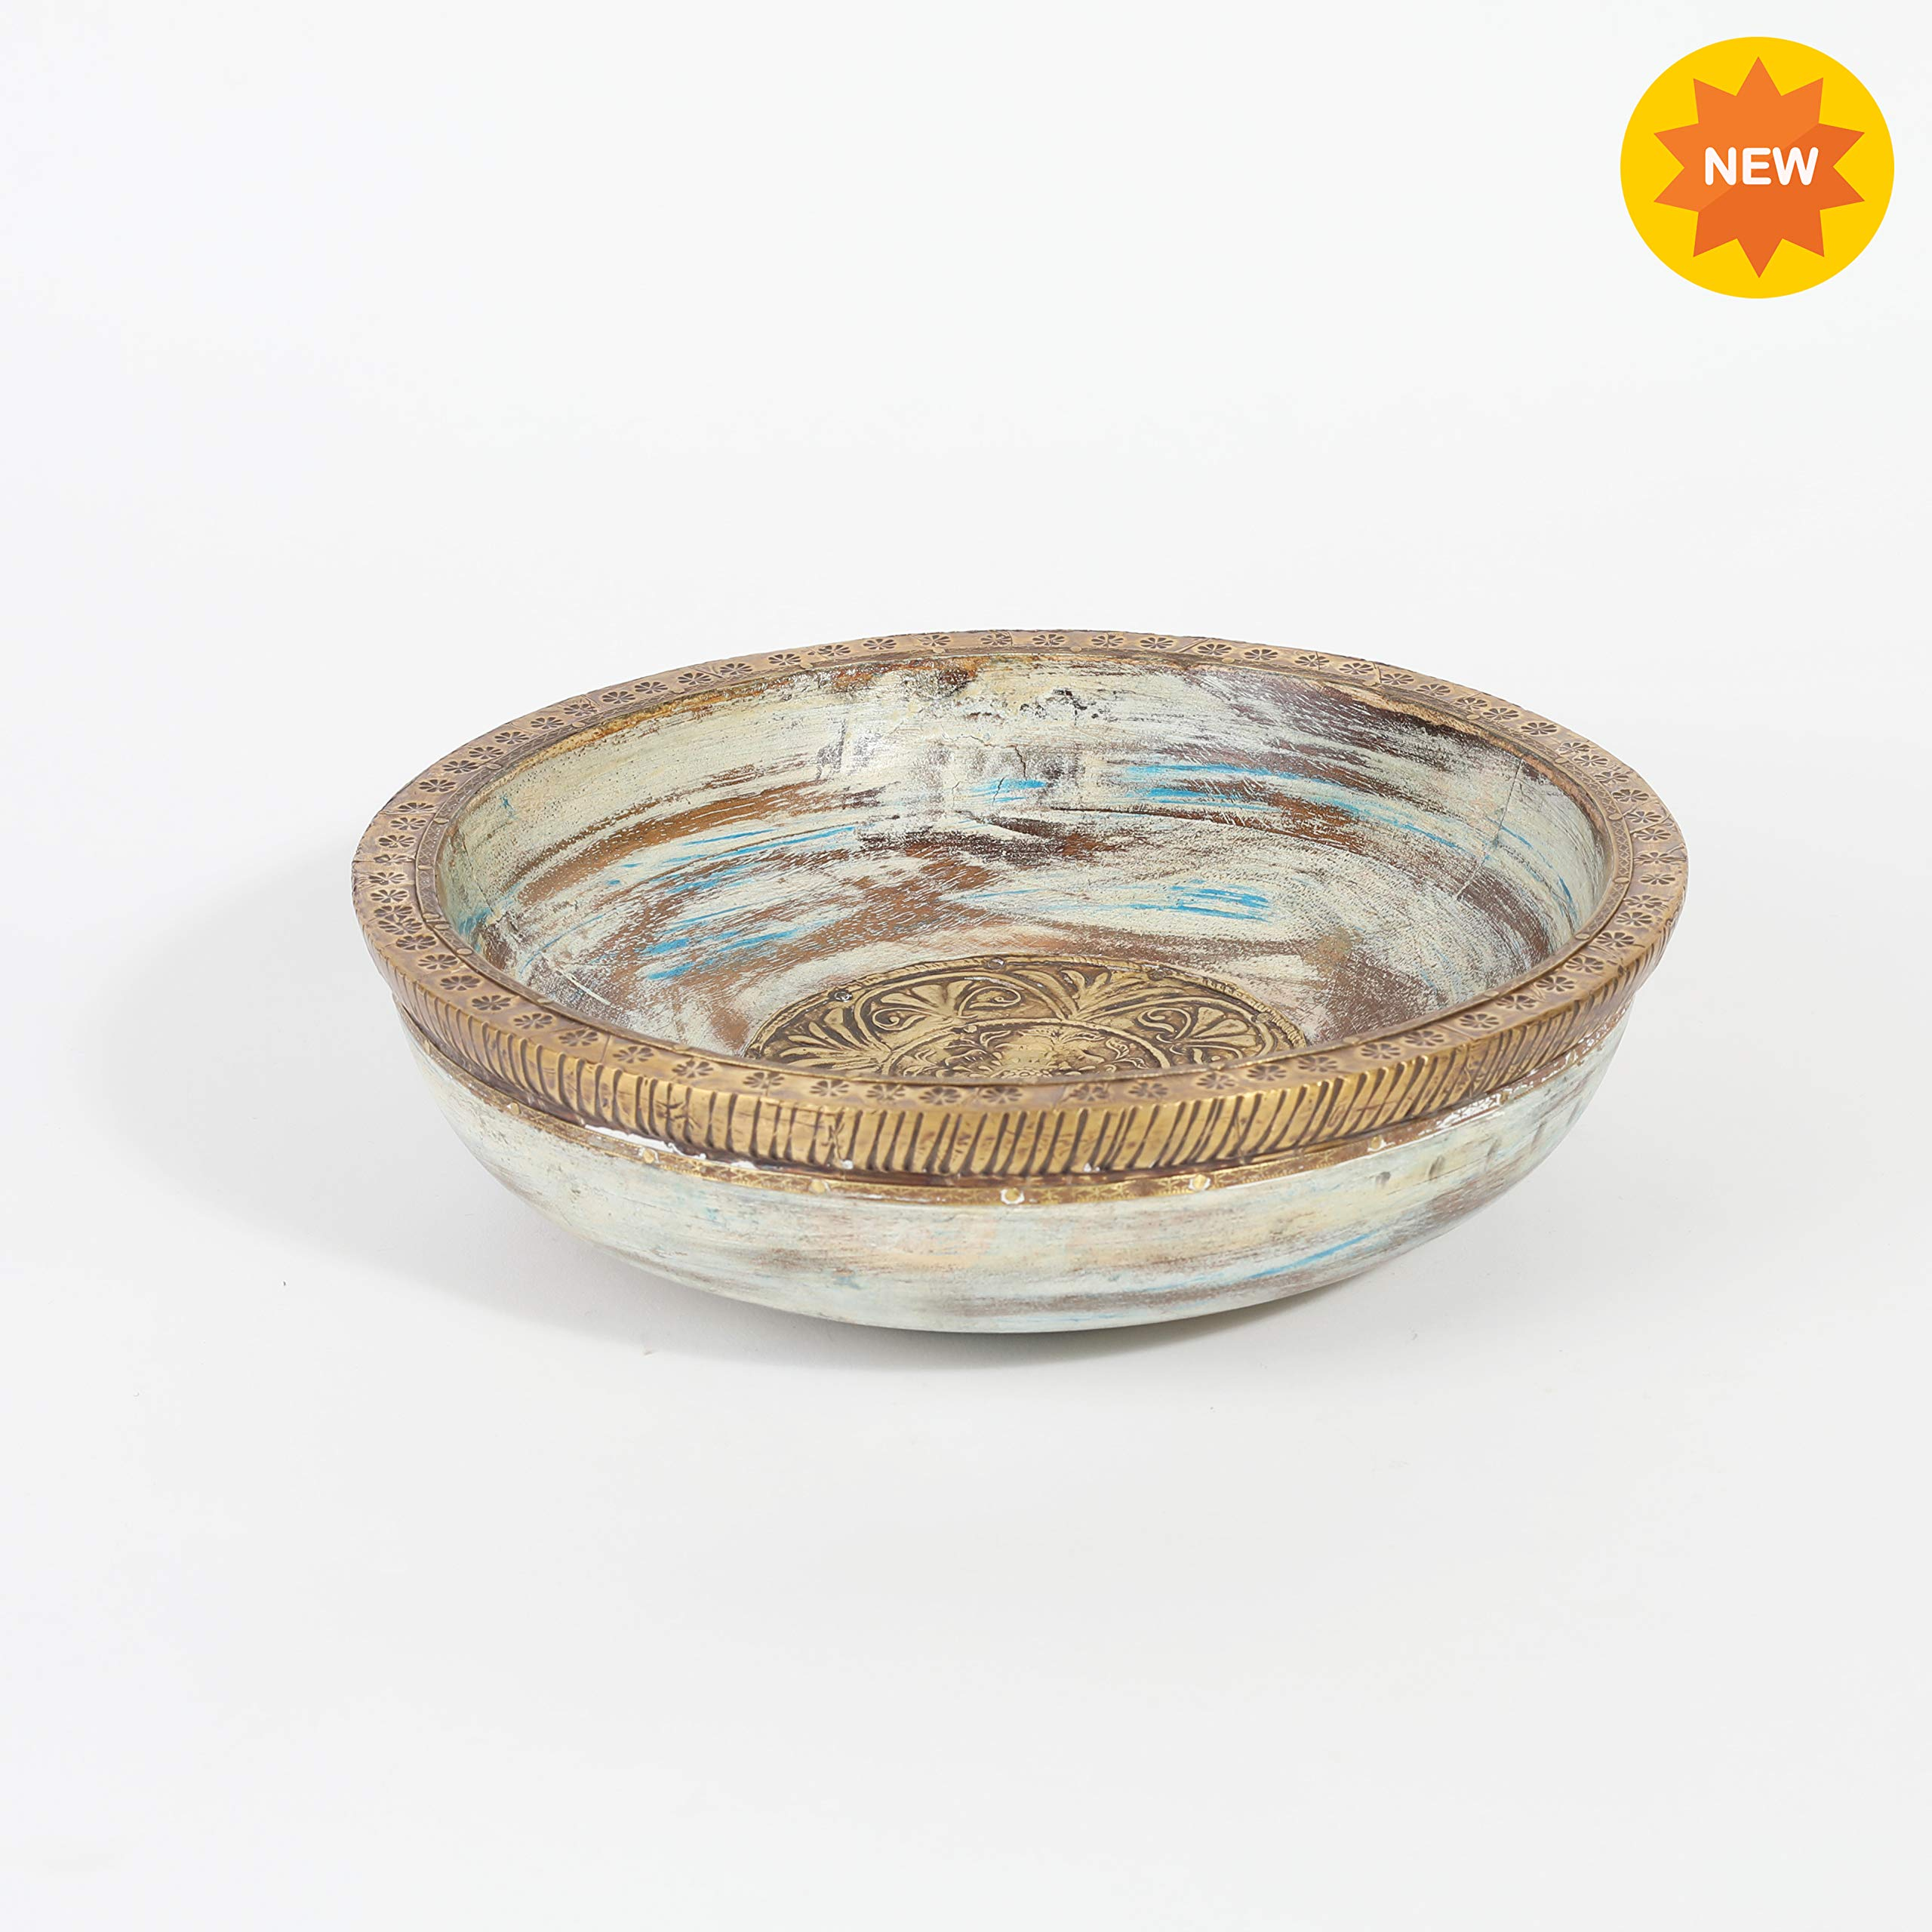 Rusticity Wood Decorative Bowl/Serving Bowl/Key Bowl/Rustic Fruit Bowl | Mango Wood | Premium Quality | Handmade | (9 inch)